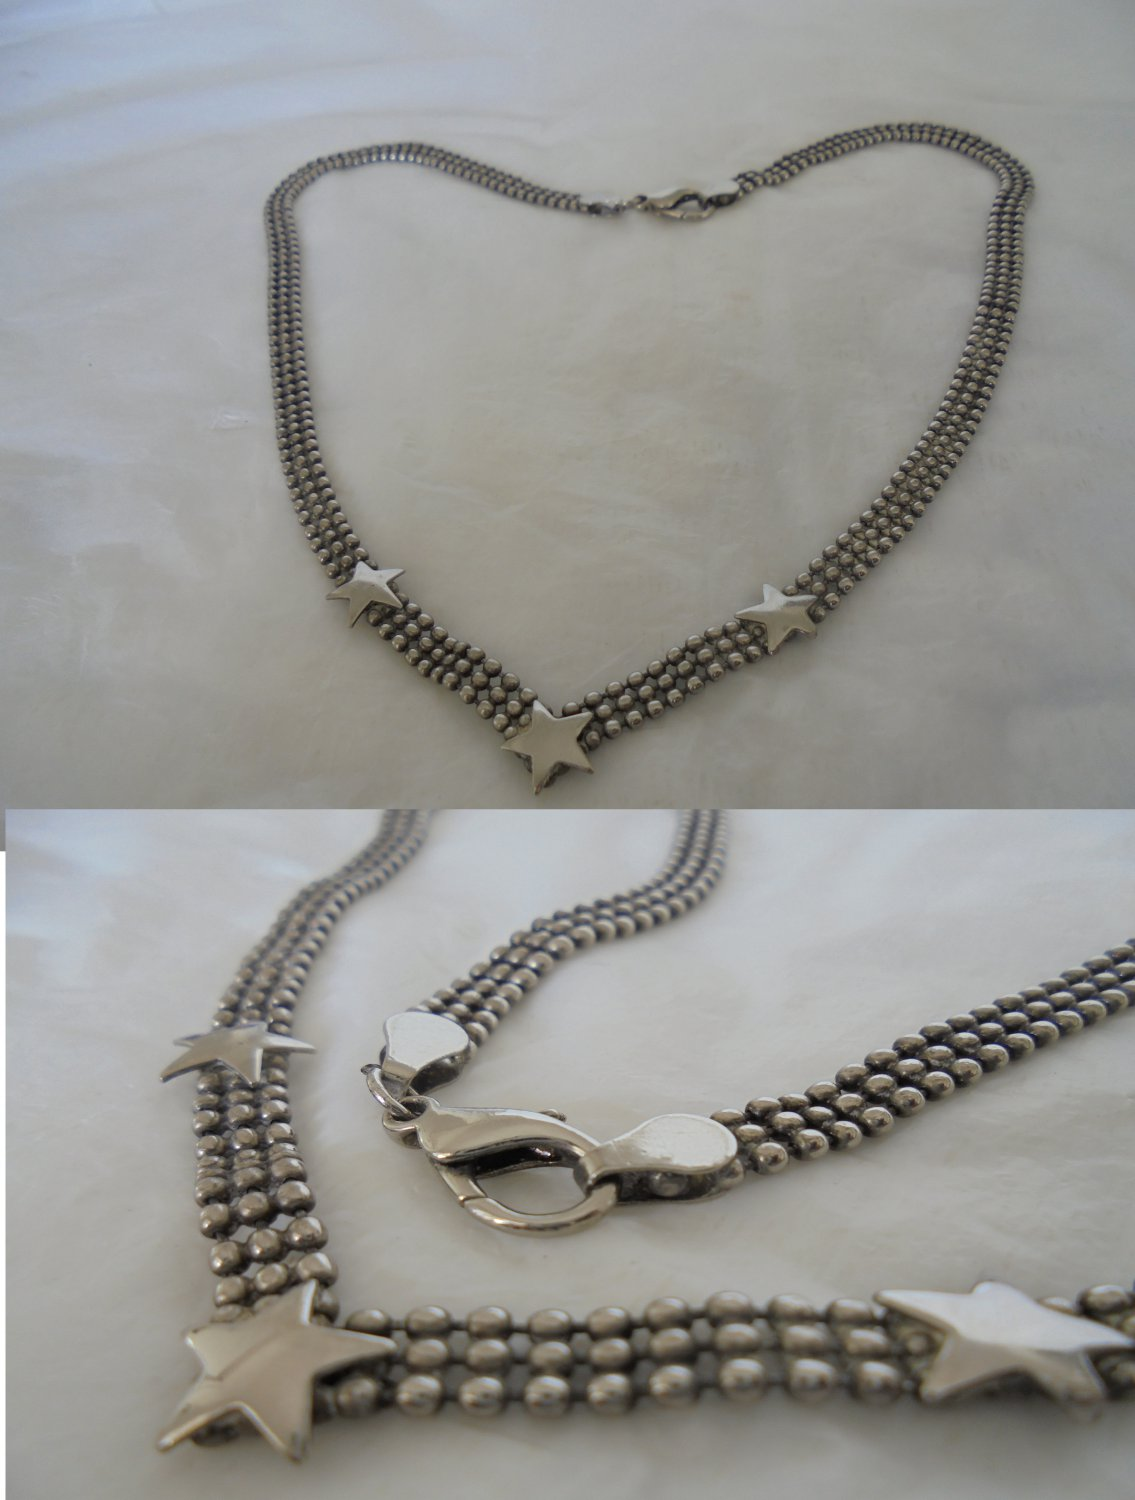 NECKLACE collier in STERLING silver 925 with 3 STARS Original in gift pochette